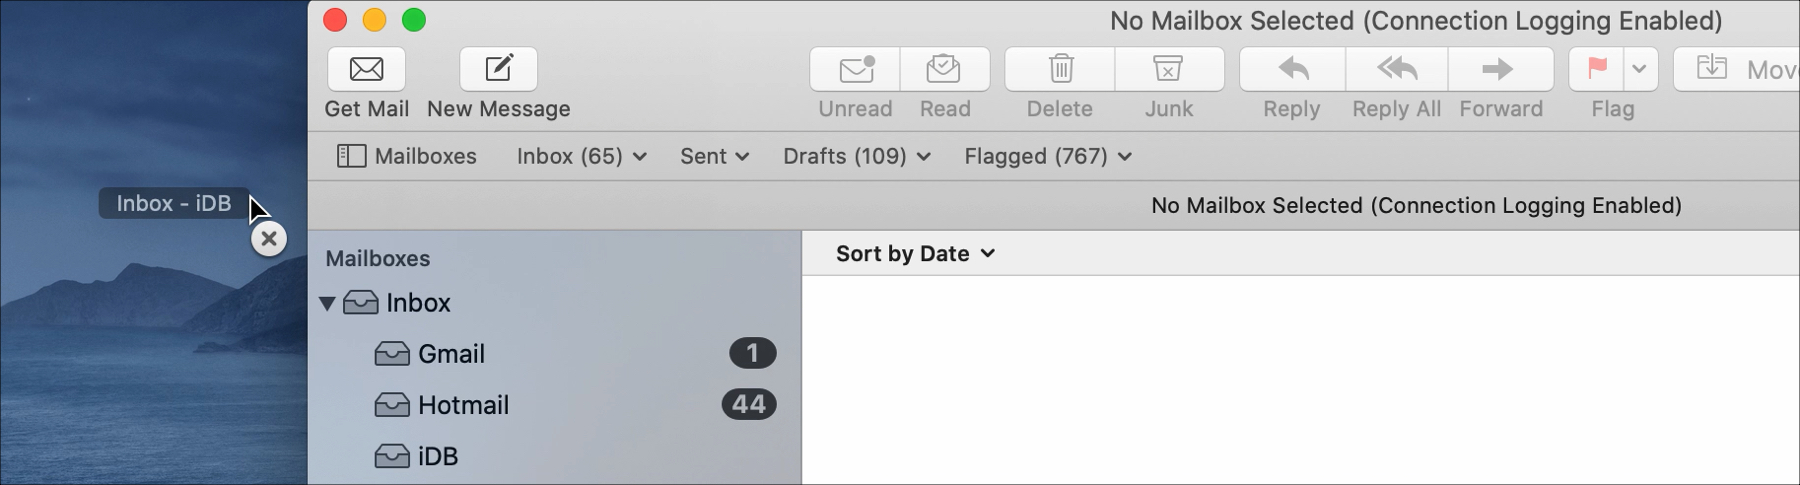 Mail Remove Mailbox from Favorites Bar on Mac